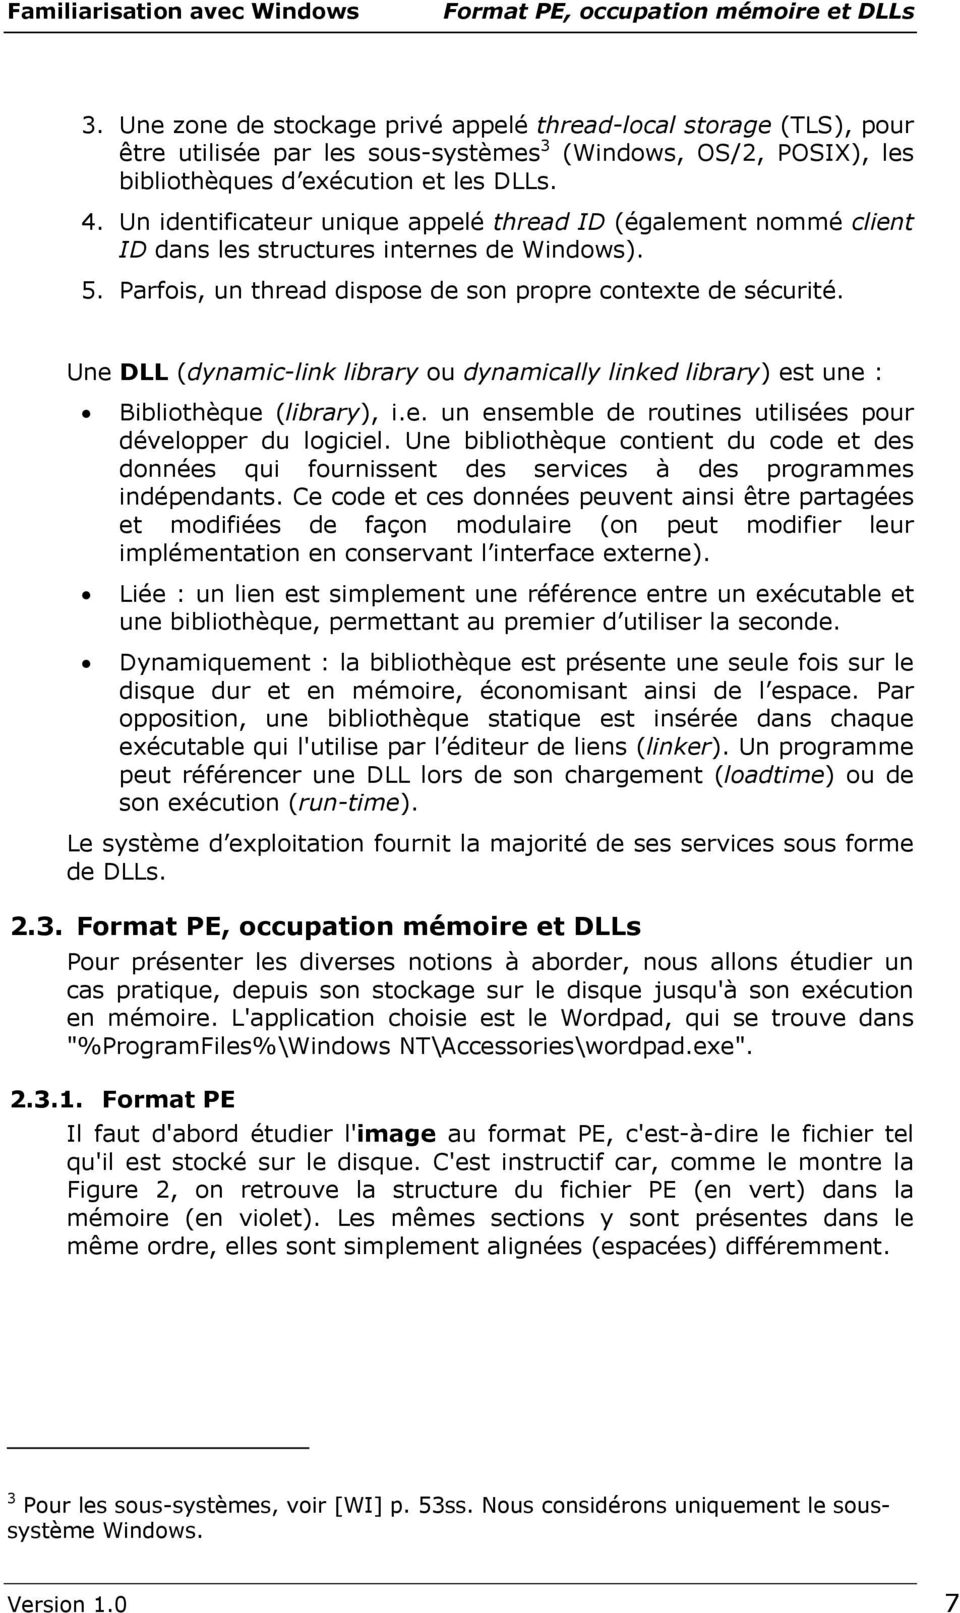 Un identificateur unique appelé thread ID (également nommé client ID dans les structures internes de Windows). 5. Parfois, un thread dispose de son propre contexte de sécurité.